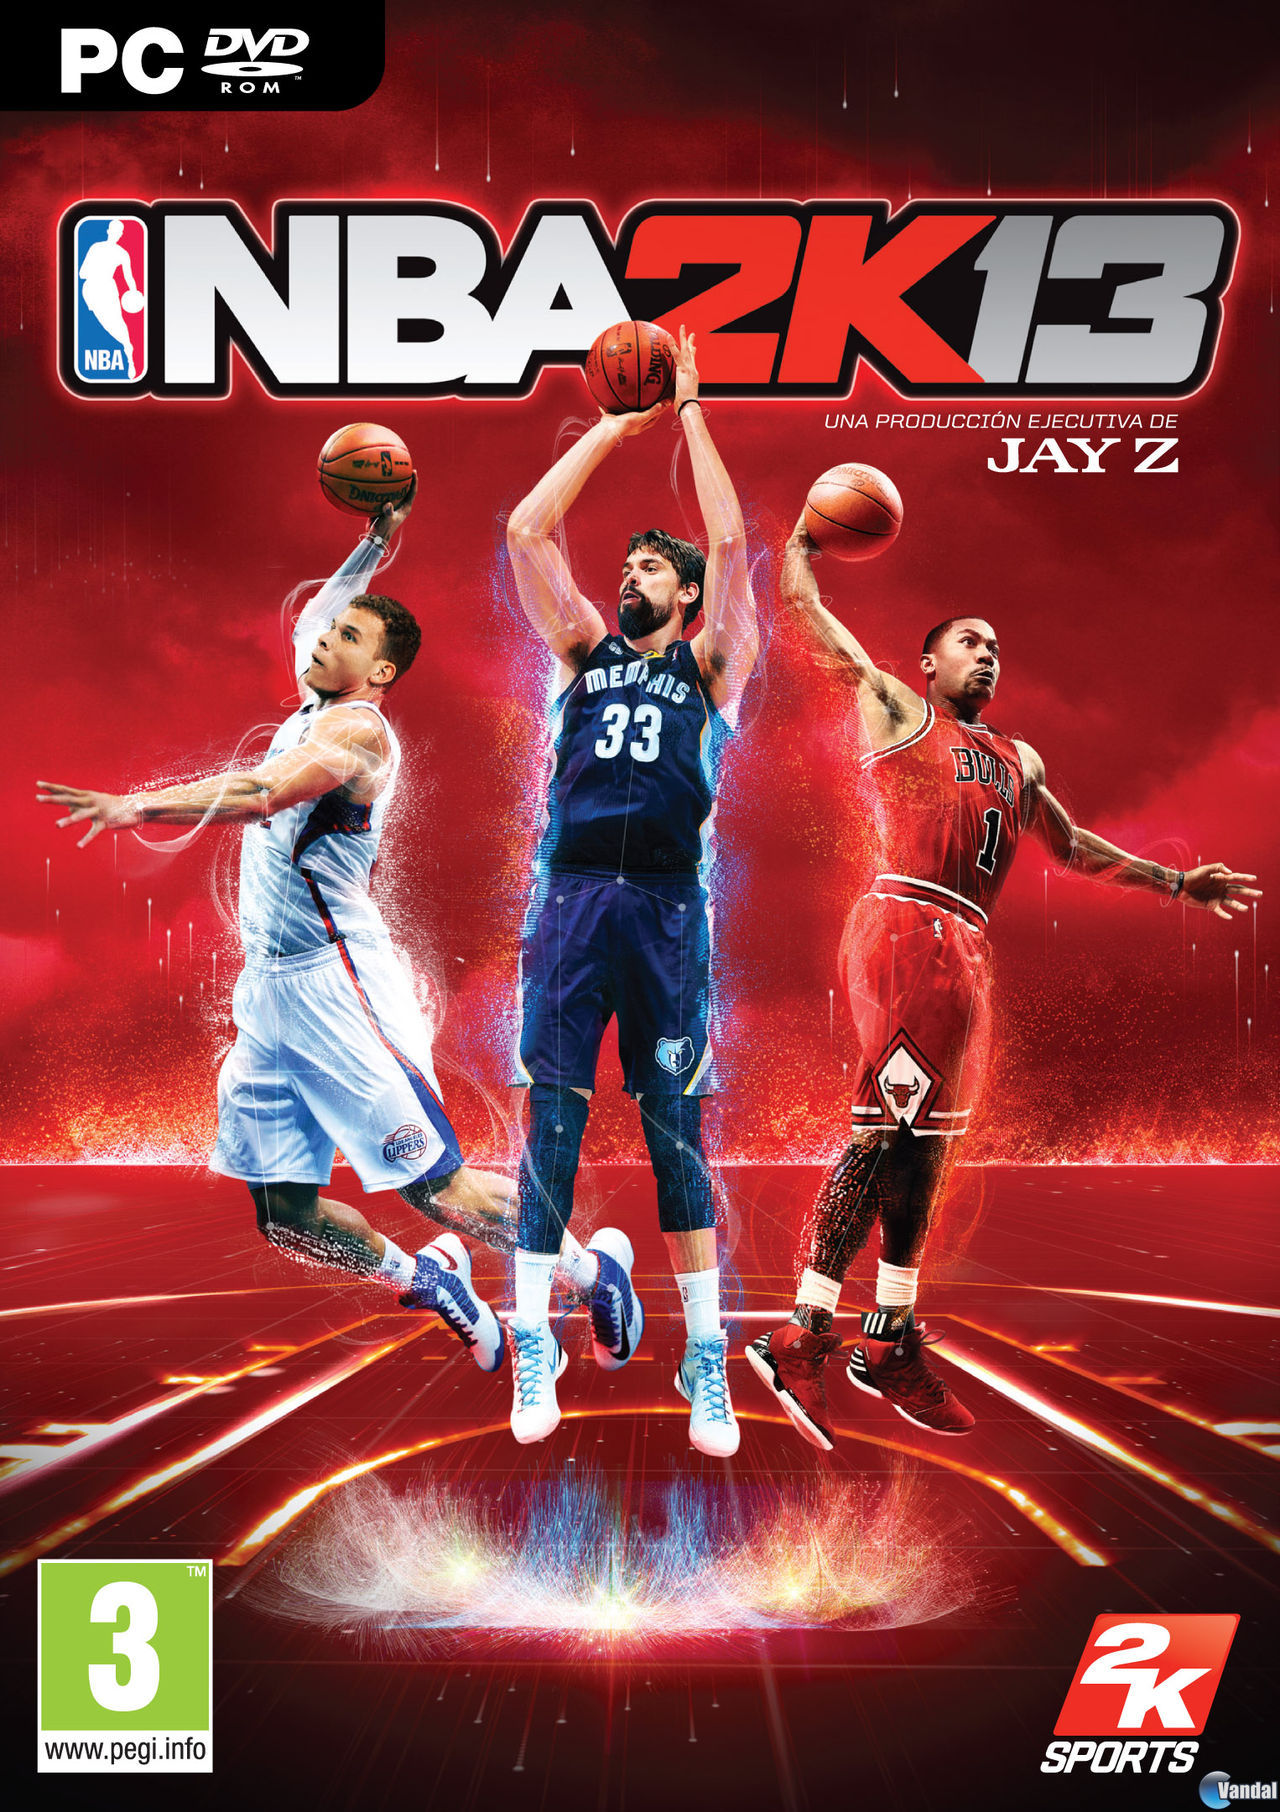 NBA 2K13 presenta a Marc Gasol protagonizando su portada